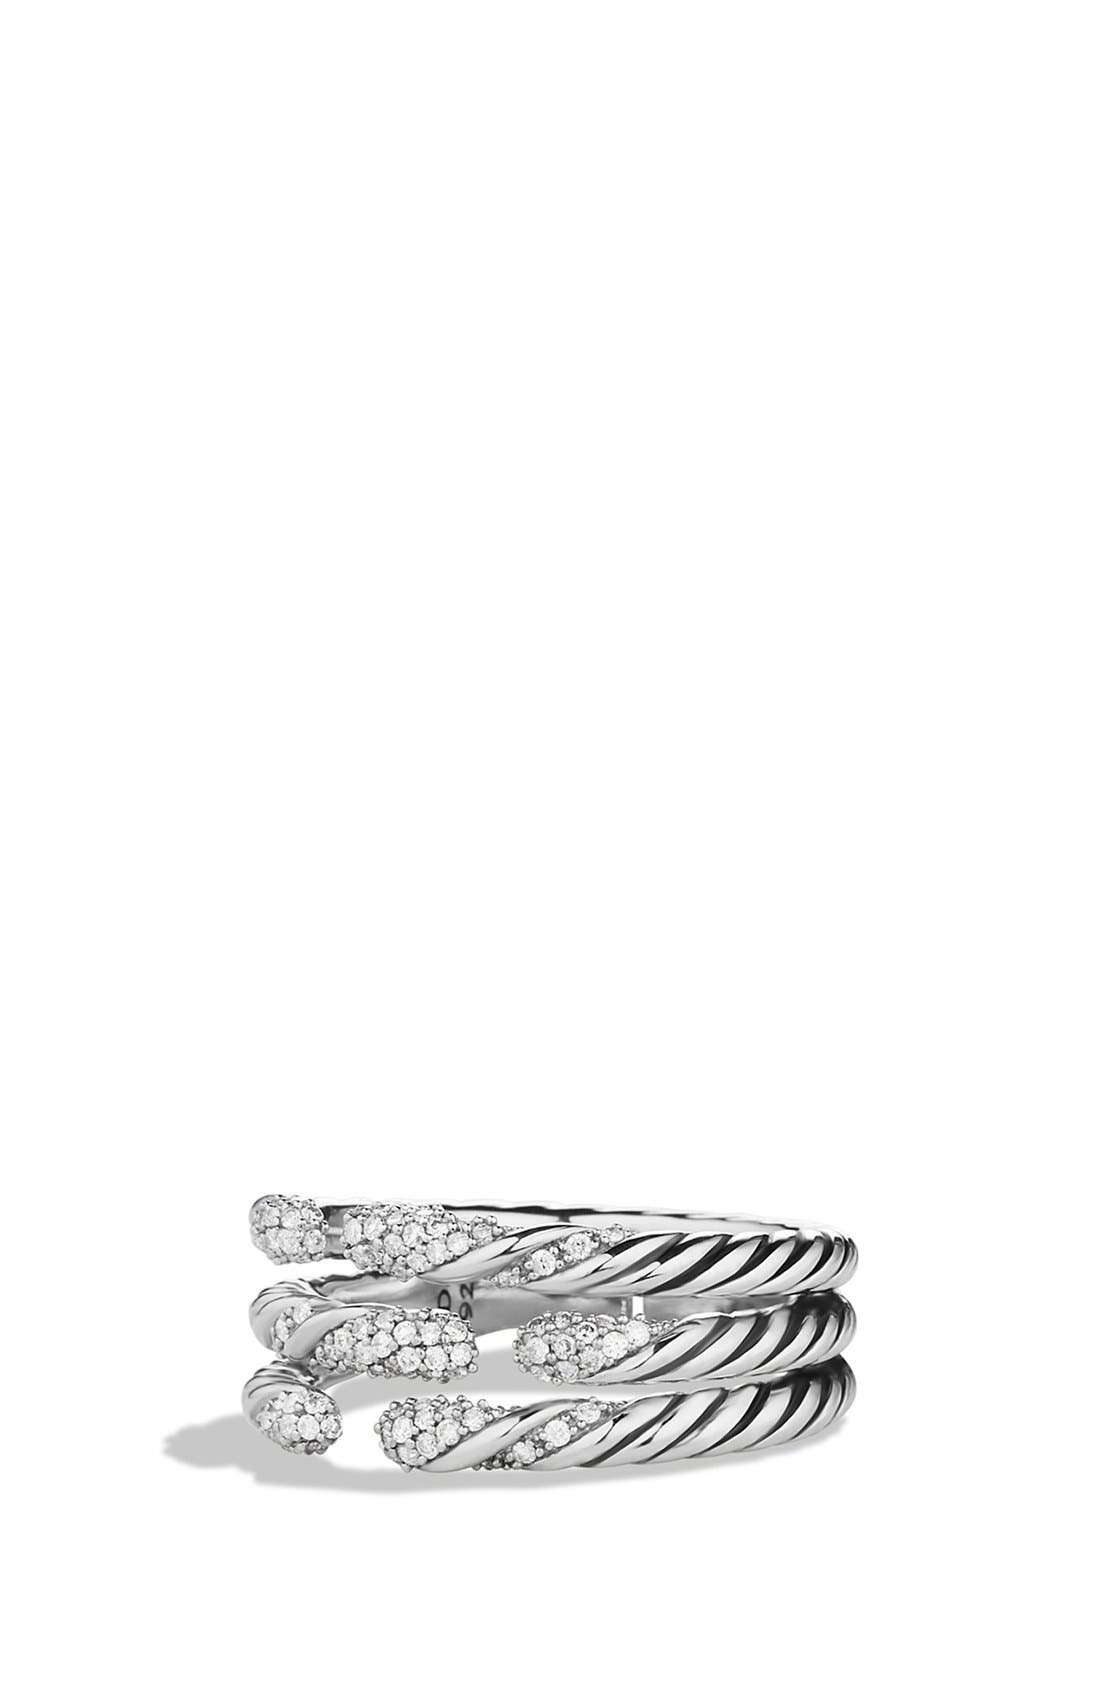 'Willow' Three-Row Ring with Diamonds,                             Main thumbnail 1, color,                             DIAMOND